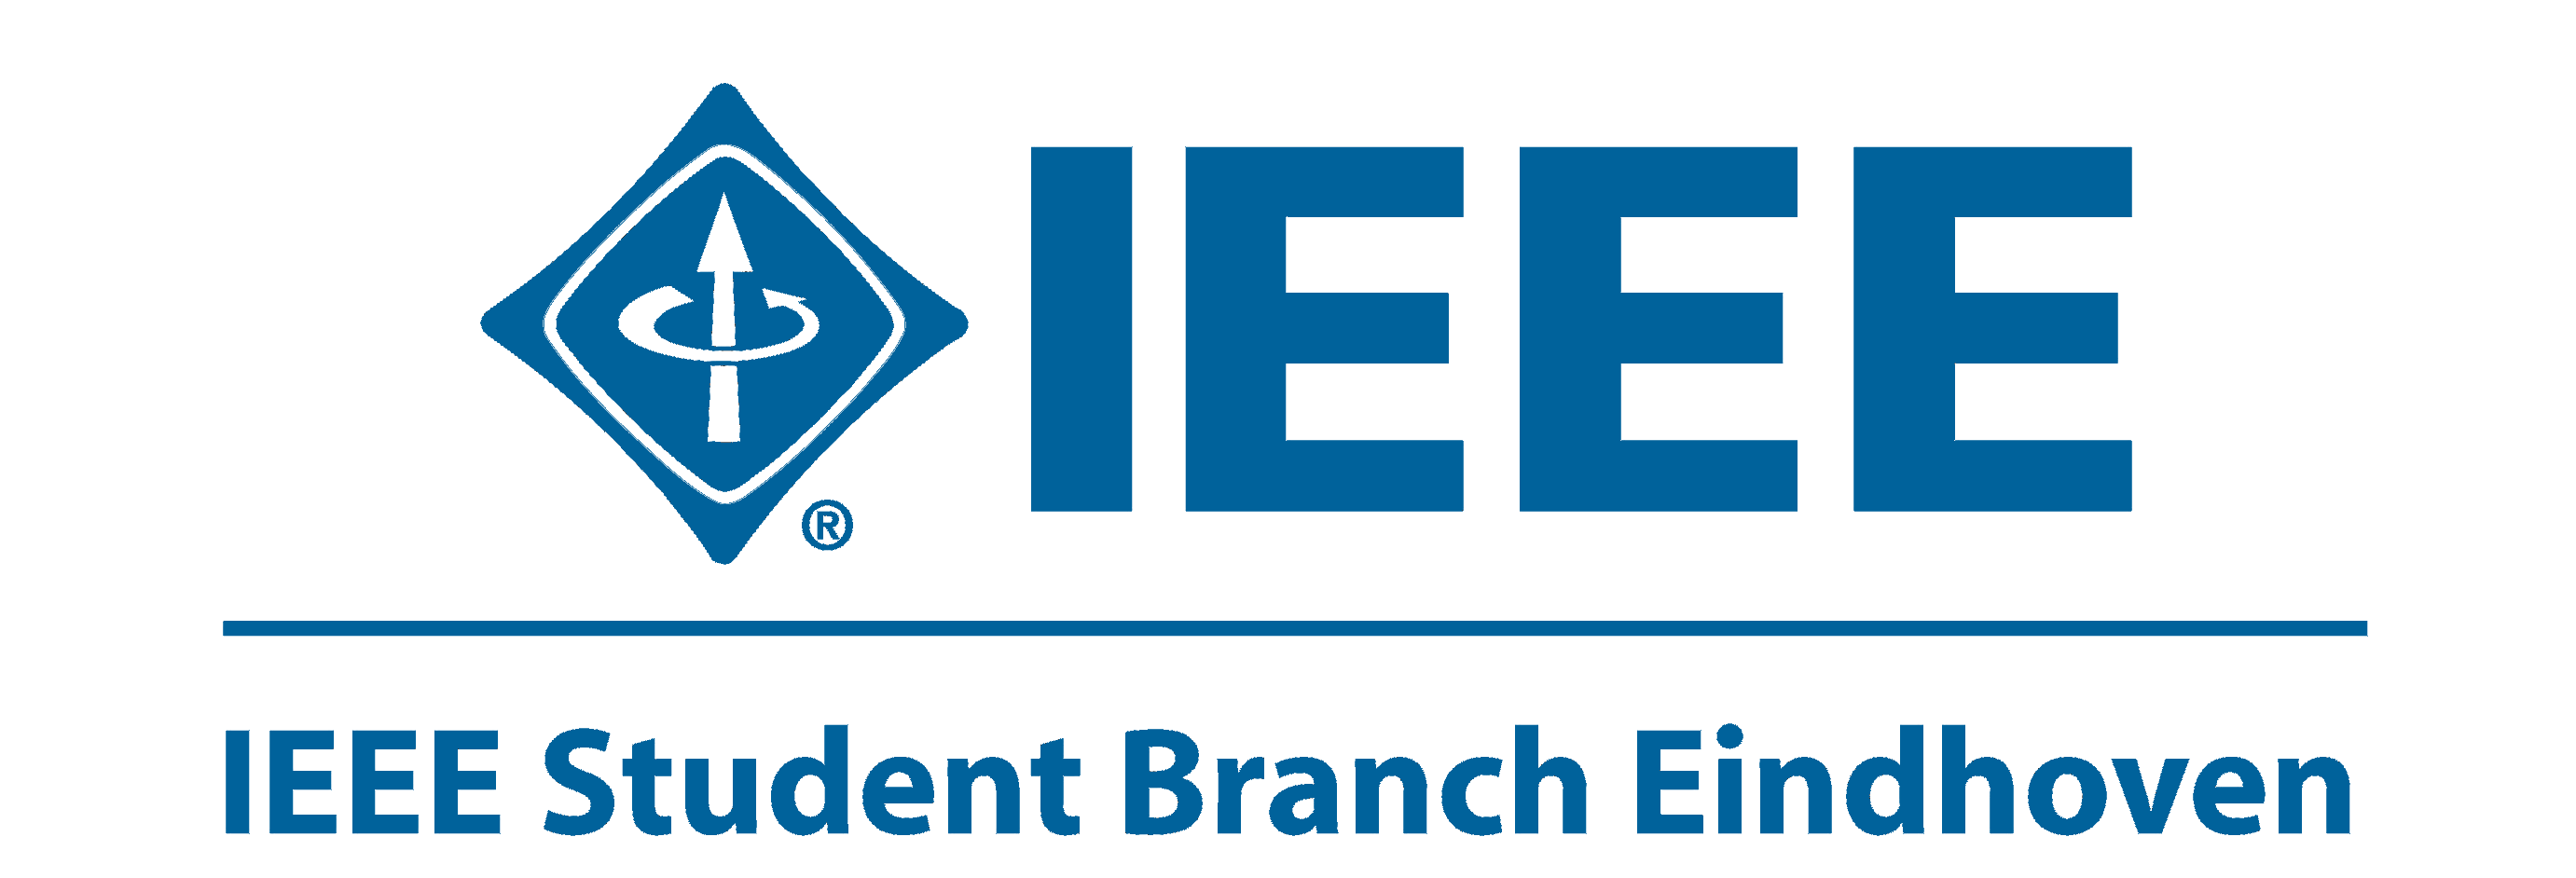 Technology Management Image: IEEE Student Branch Eindhoven